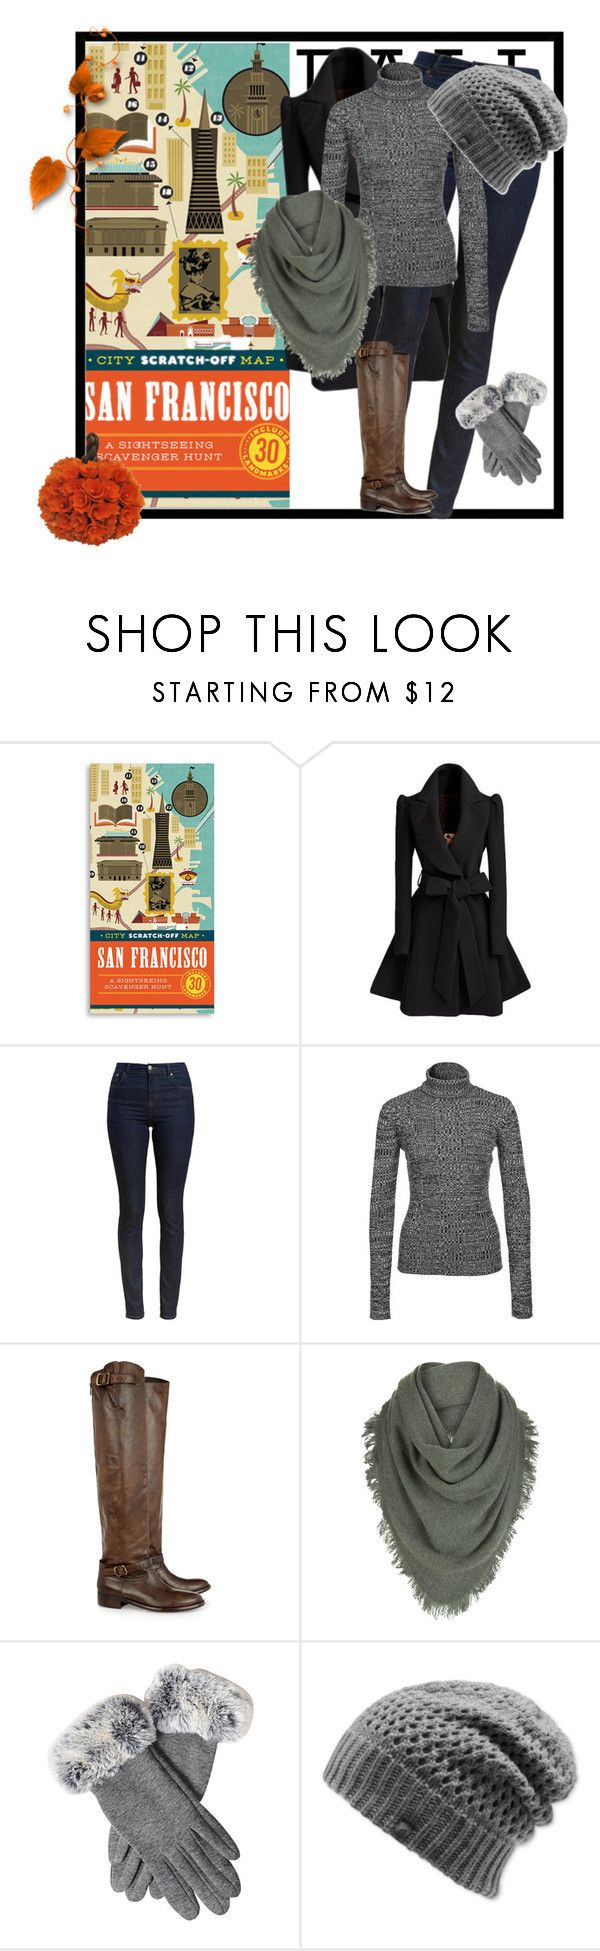 """""""san francisco travel outfit"""" by armsdani ❤ liked on Polyvore featuring Chronicle Books, Barbour, NLY Trend, Belstaff, White + Warren and The North Face"""